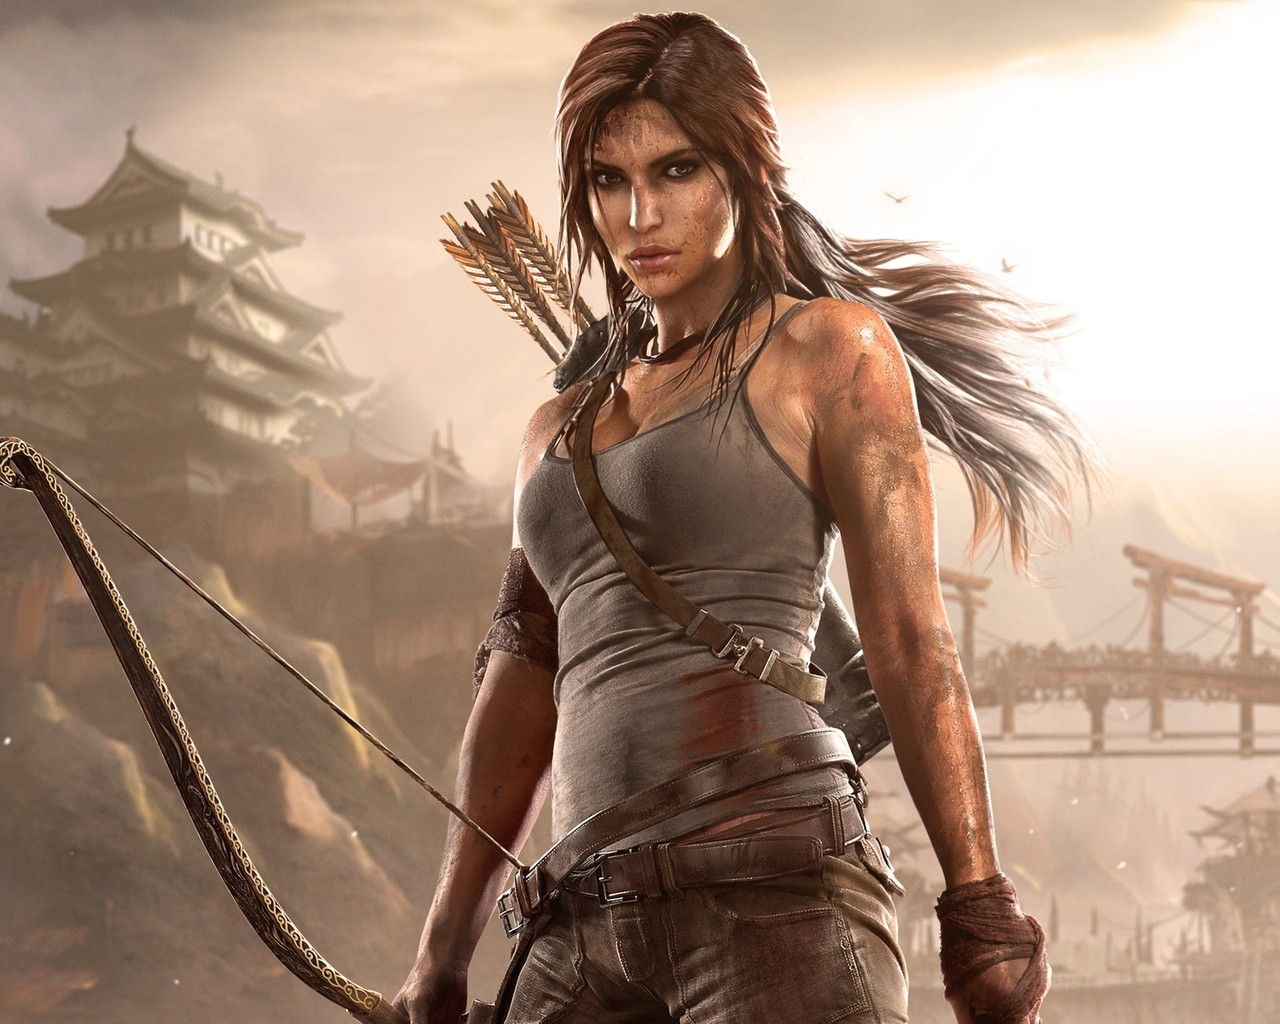 Rise of the Tomb Raider Lara Croft for 1280 x 1024 resolution